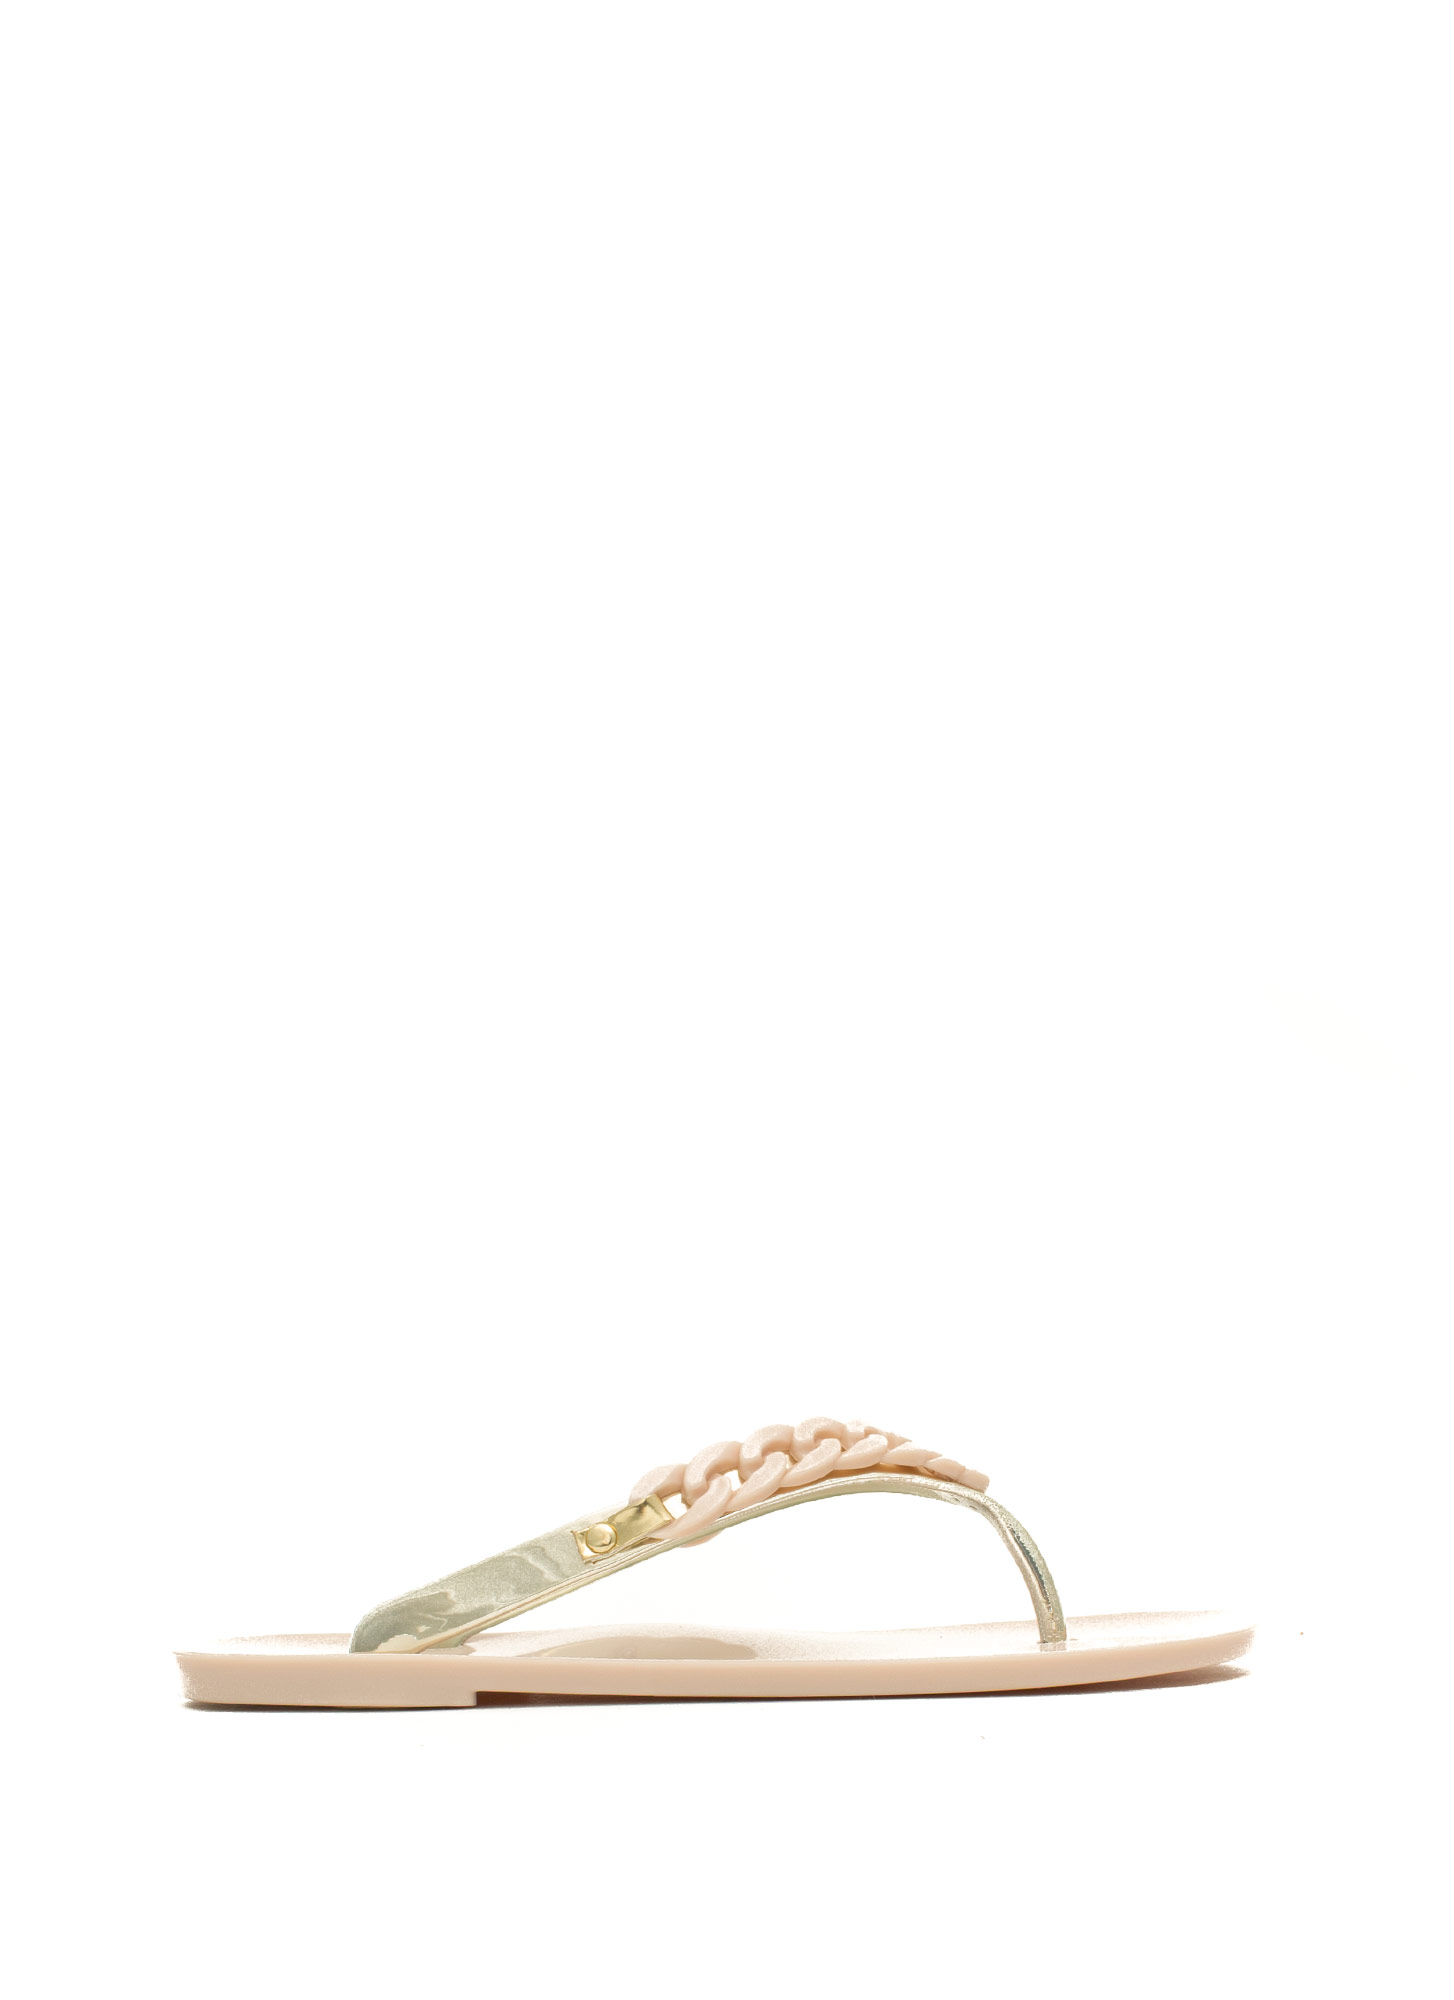 Curb Link Jelly Thong Sandals NUDEGOLD